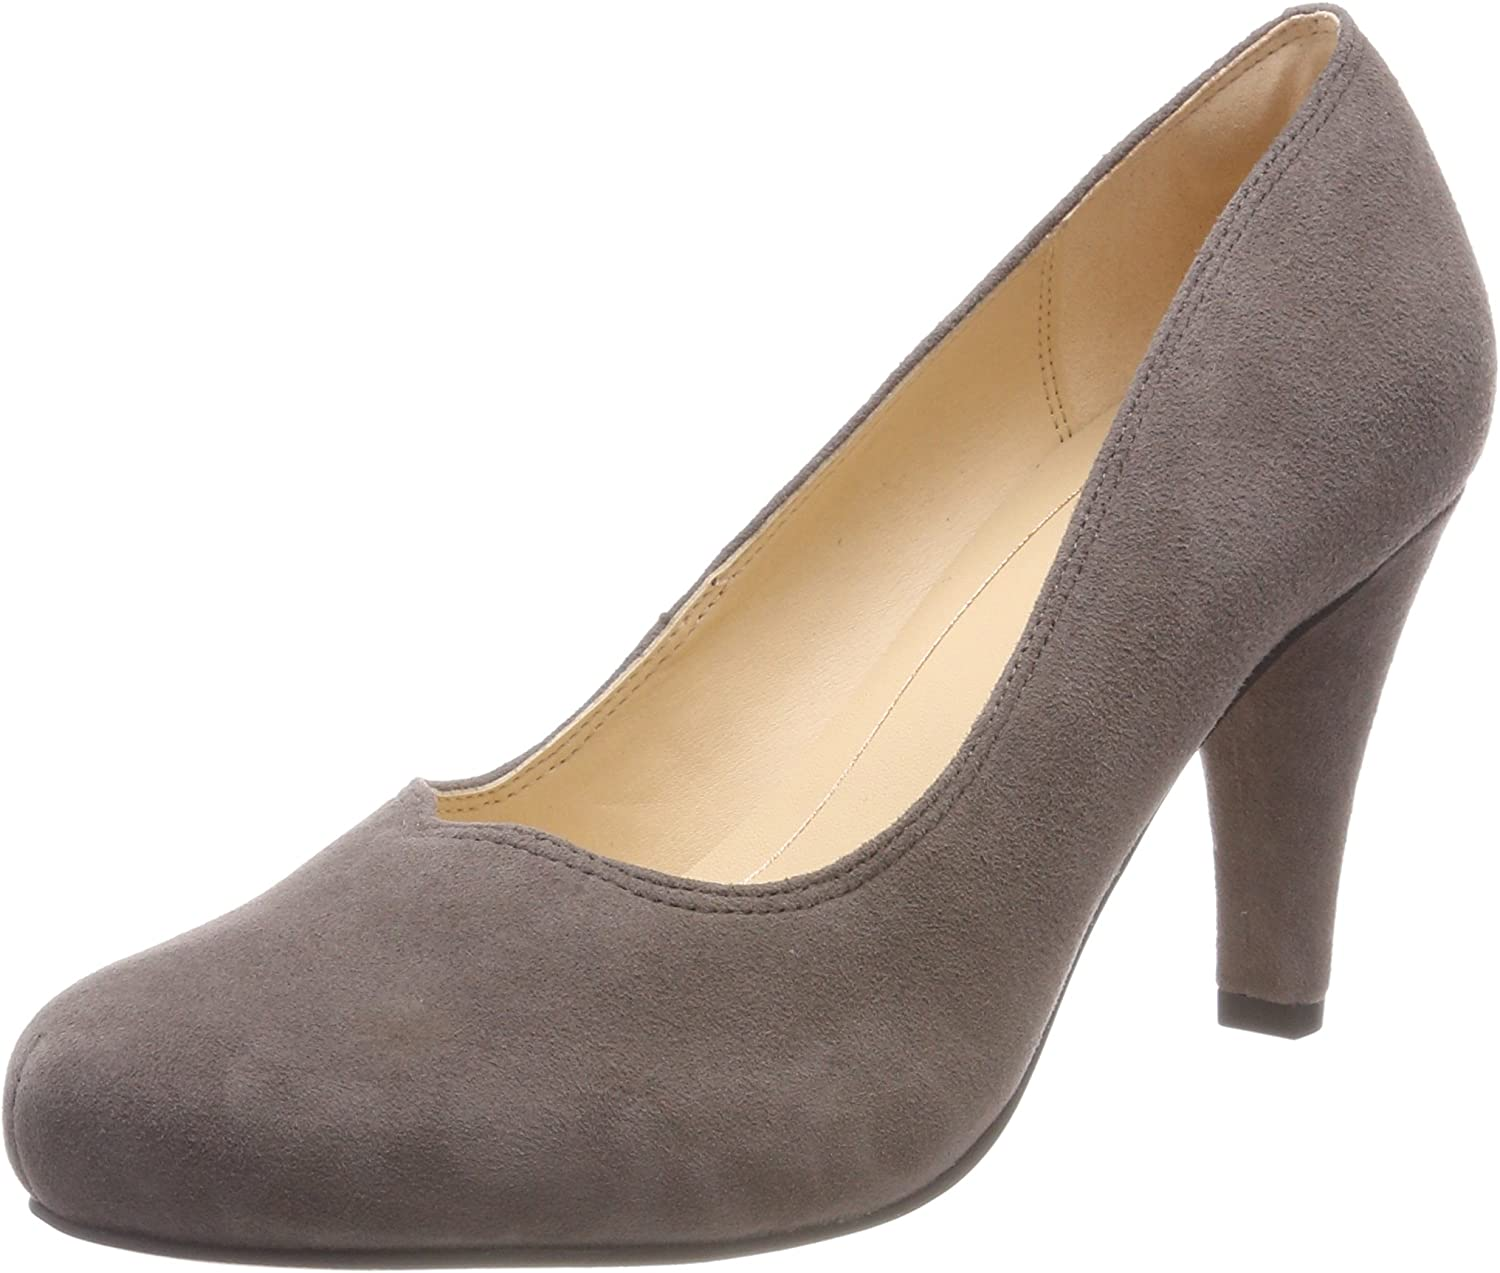 Clarks shoes 26132269 Dalia pink Taupe